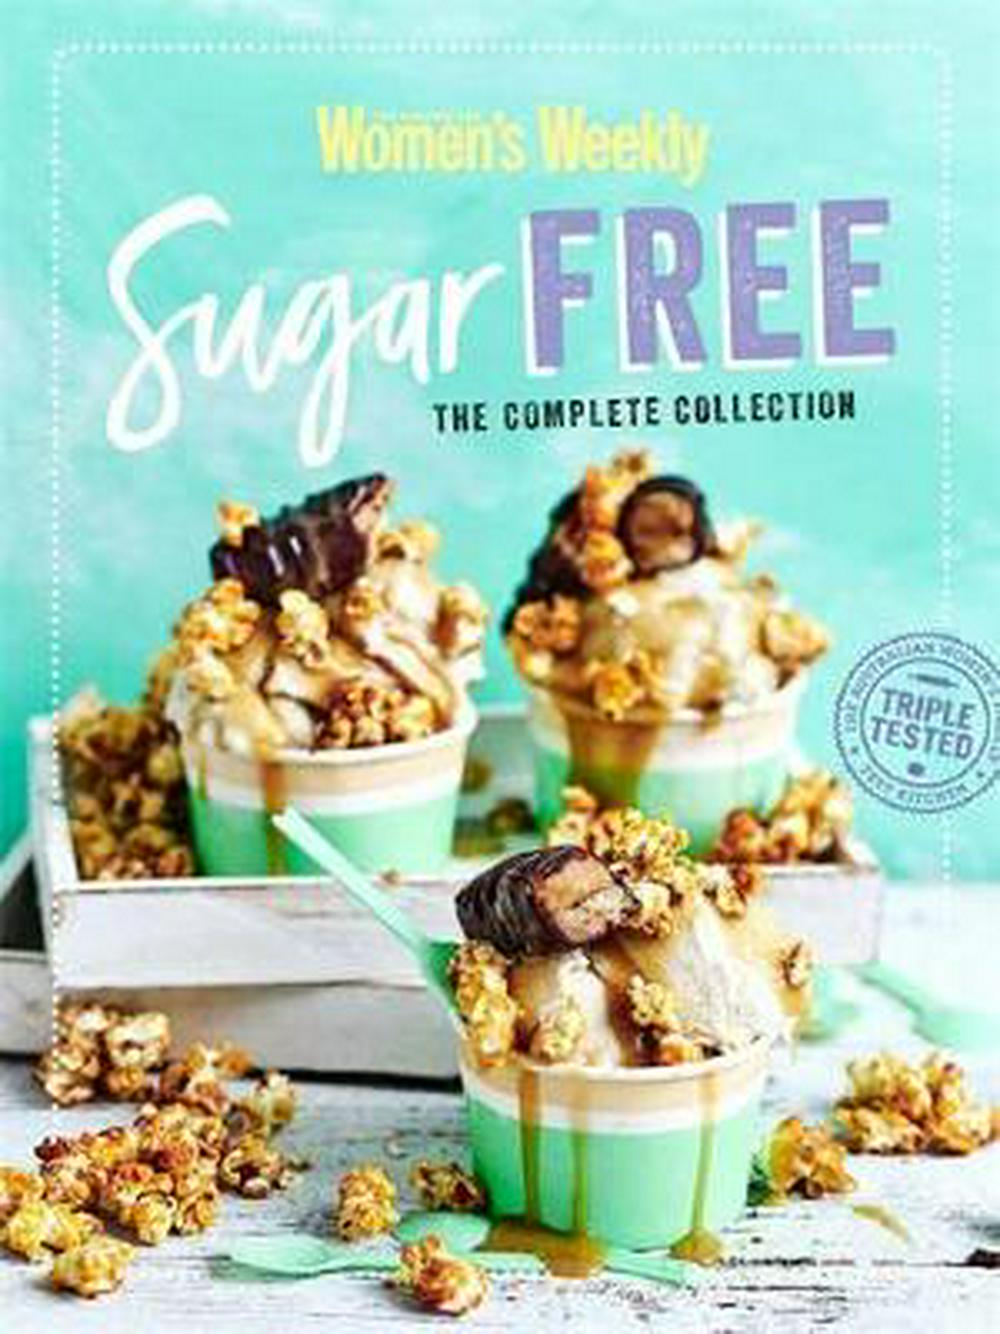 Sugar Free The Complete CollectionThe Complete Collection by The Australian Women's Weekly, ISBN: 9781925694512